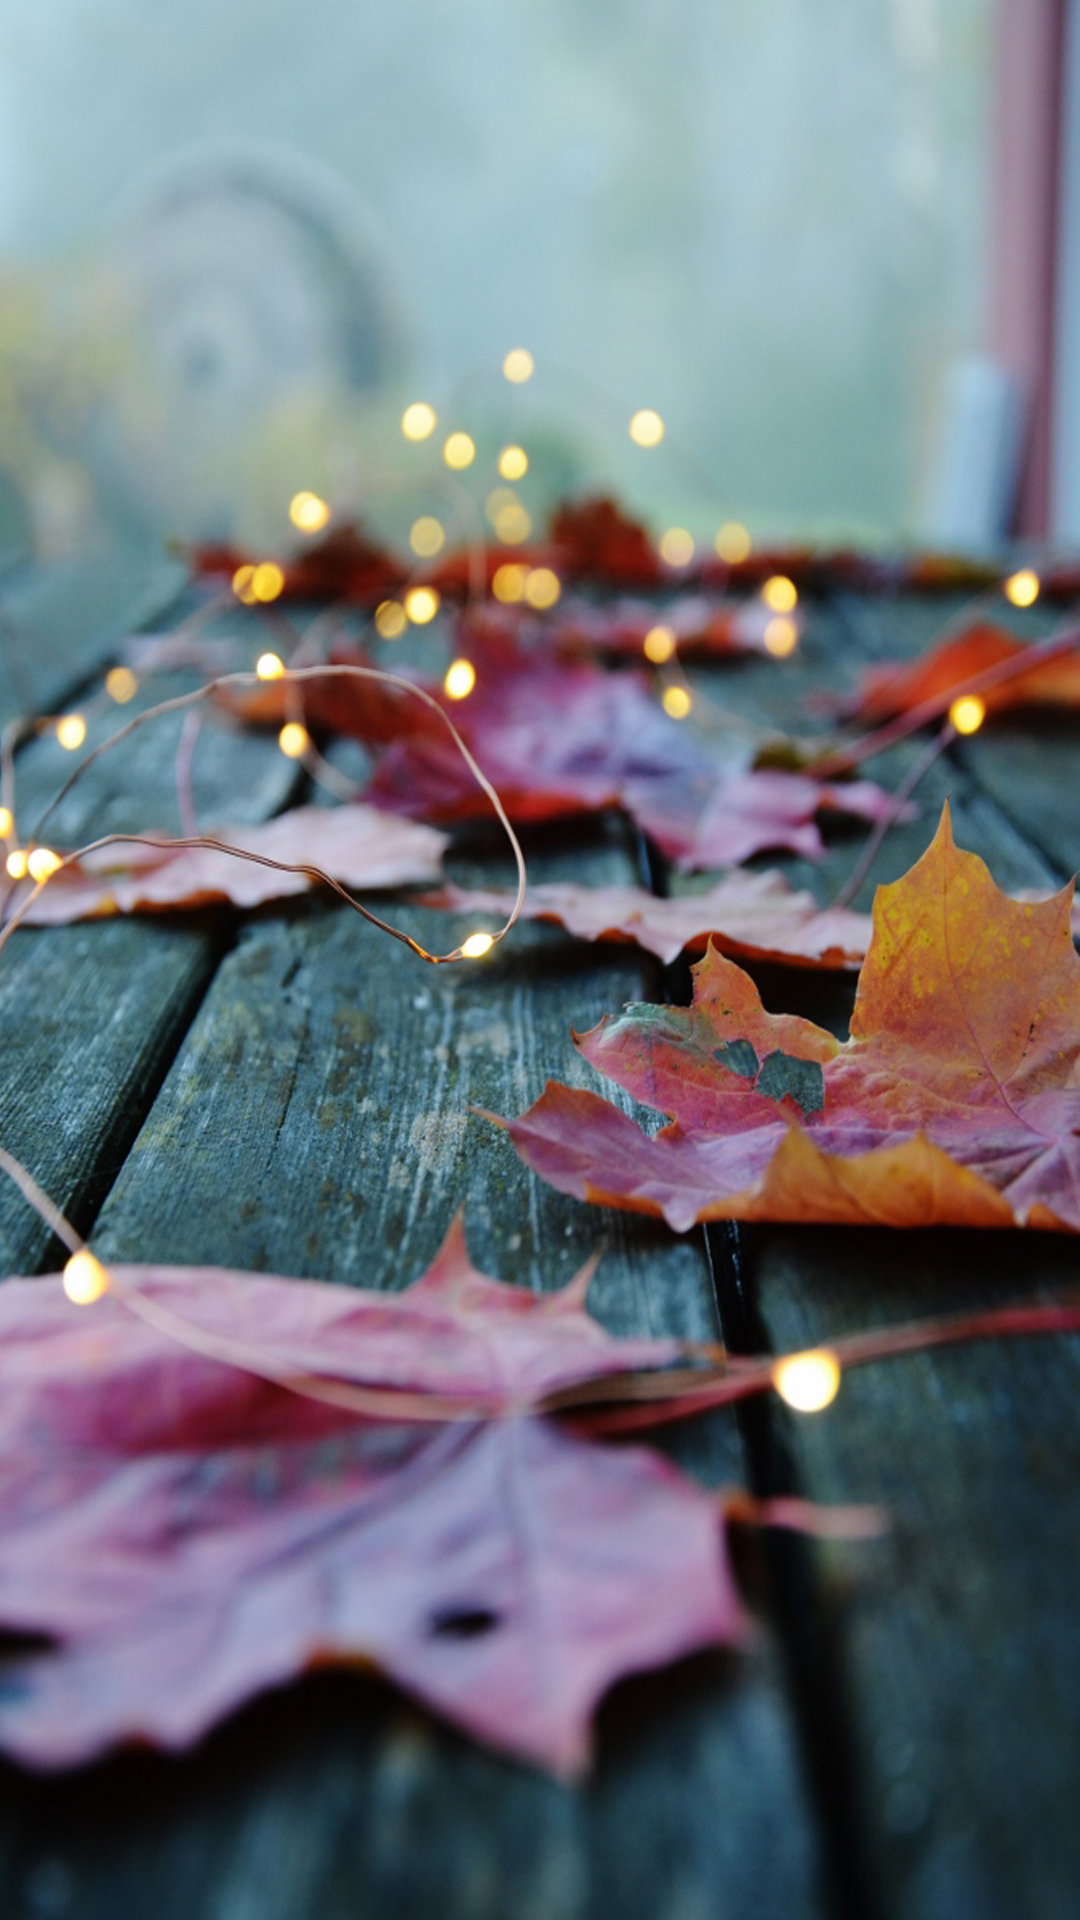 Wallpaper For Fall Posted By Christopher Thompson